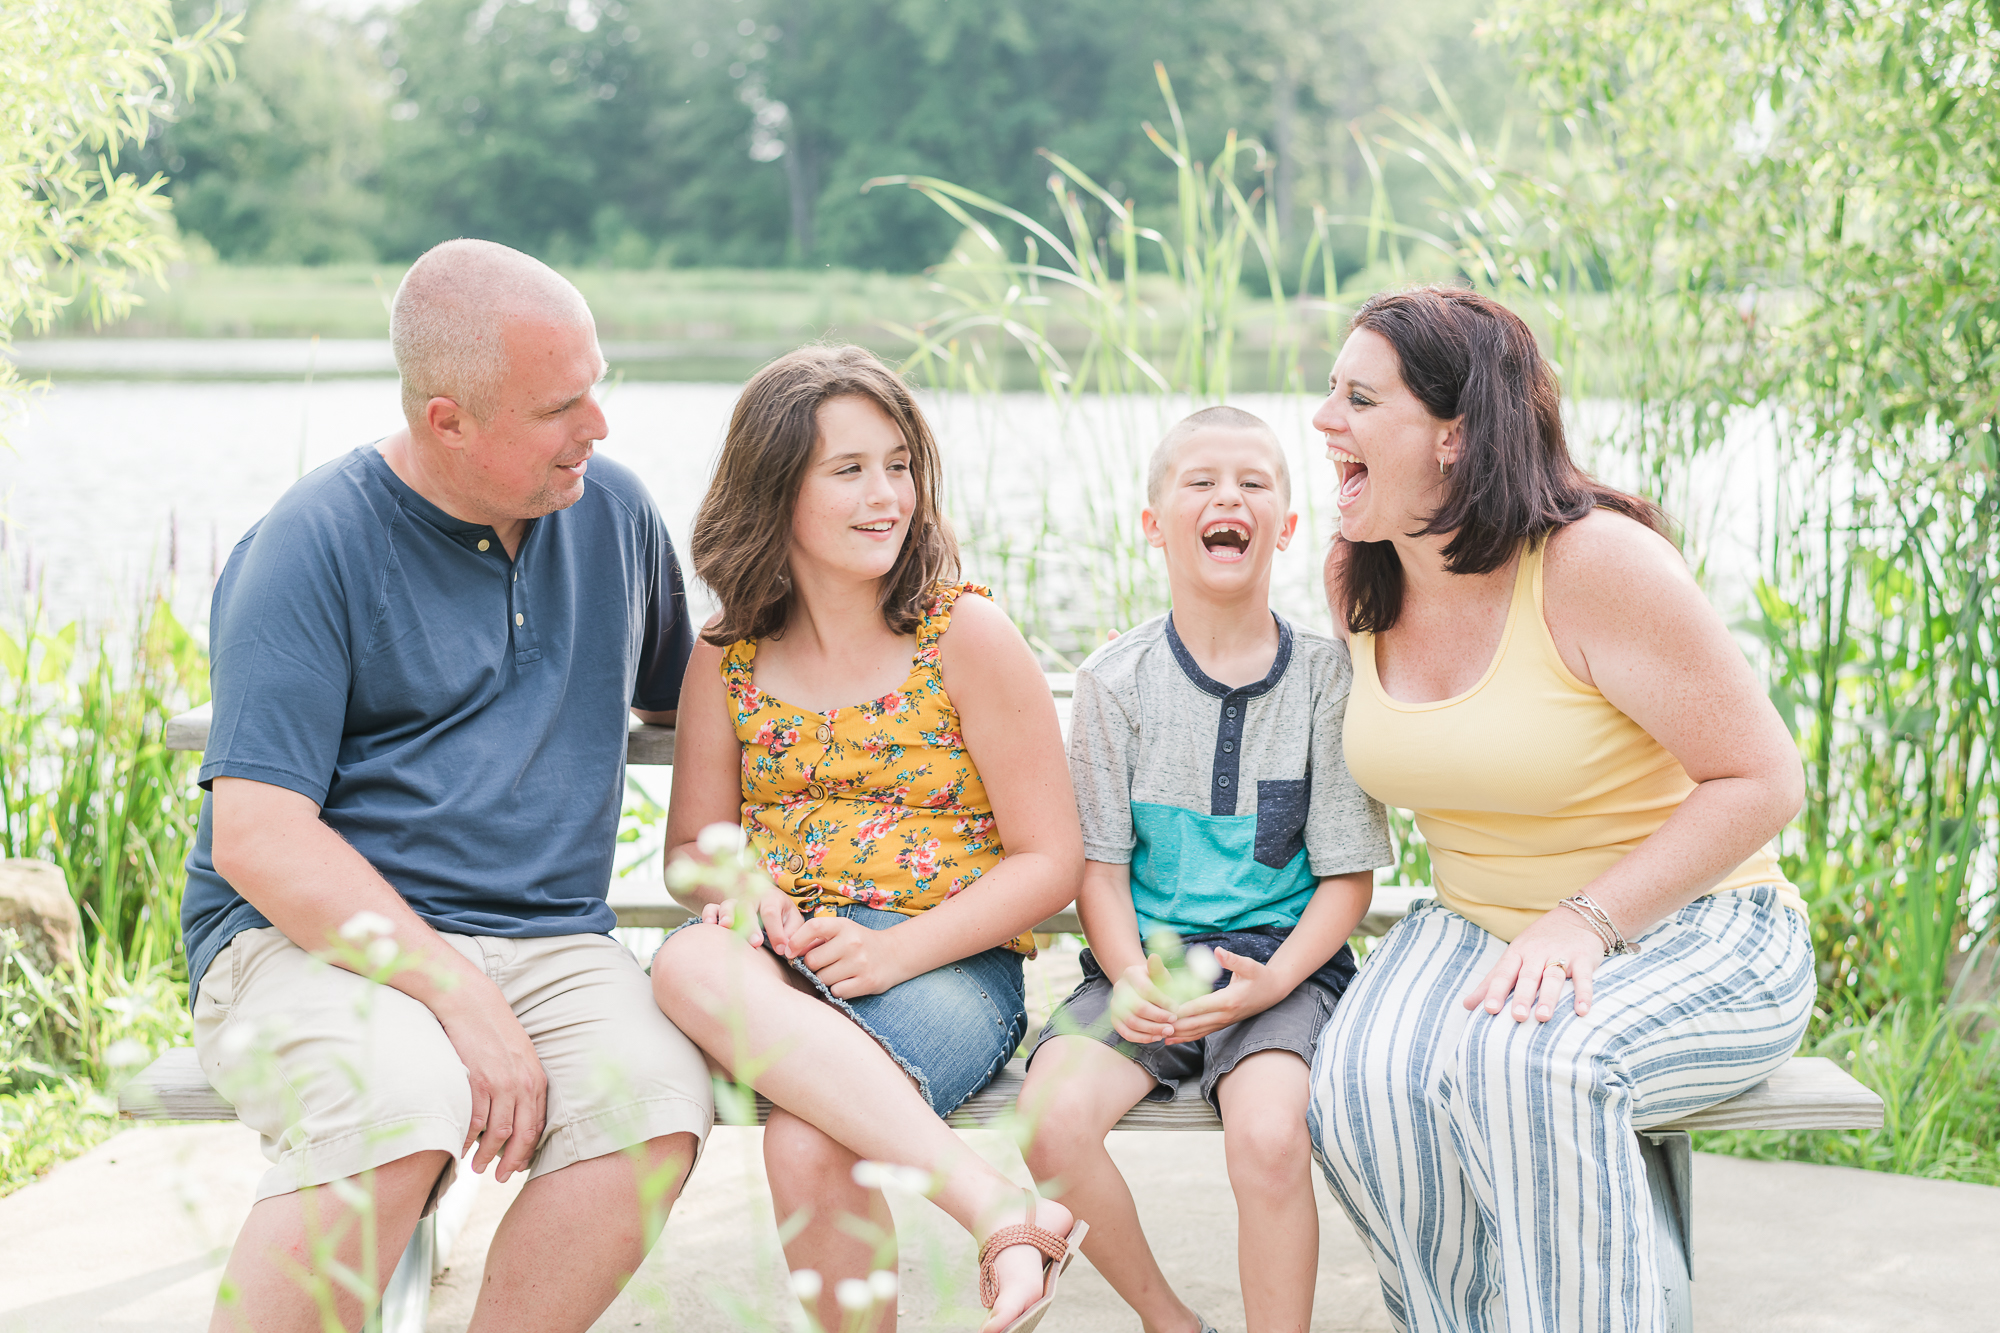 Summer_B Family Portraits Session_Mugrage Park_Medina_Ohio-34.jpg